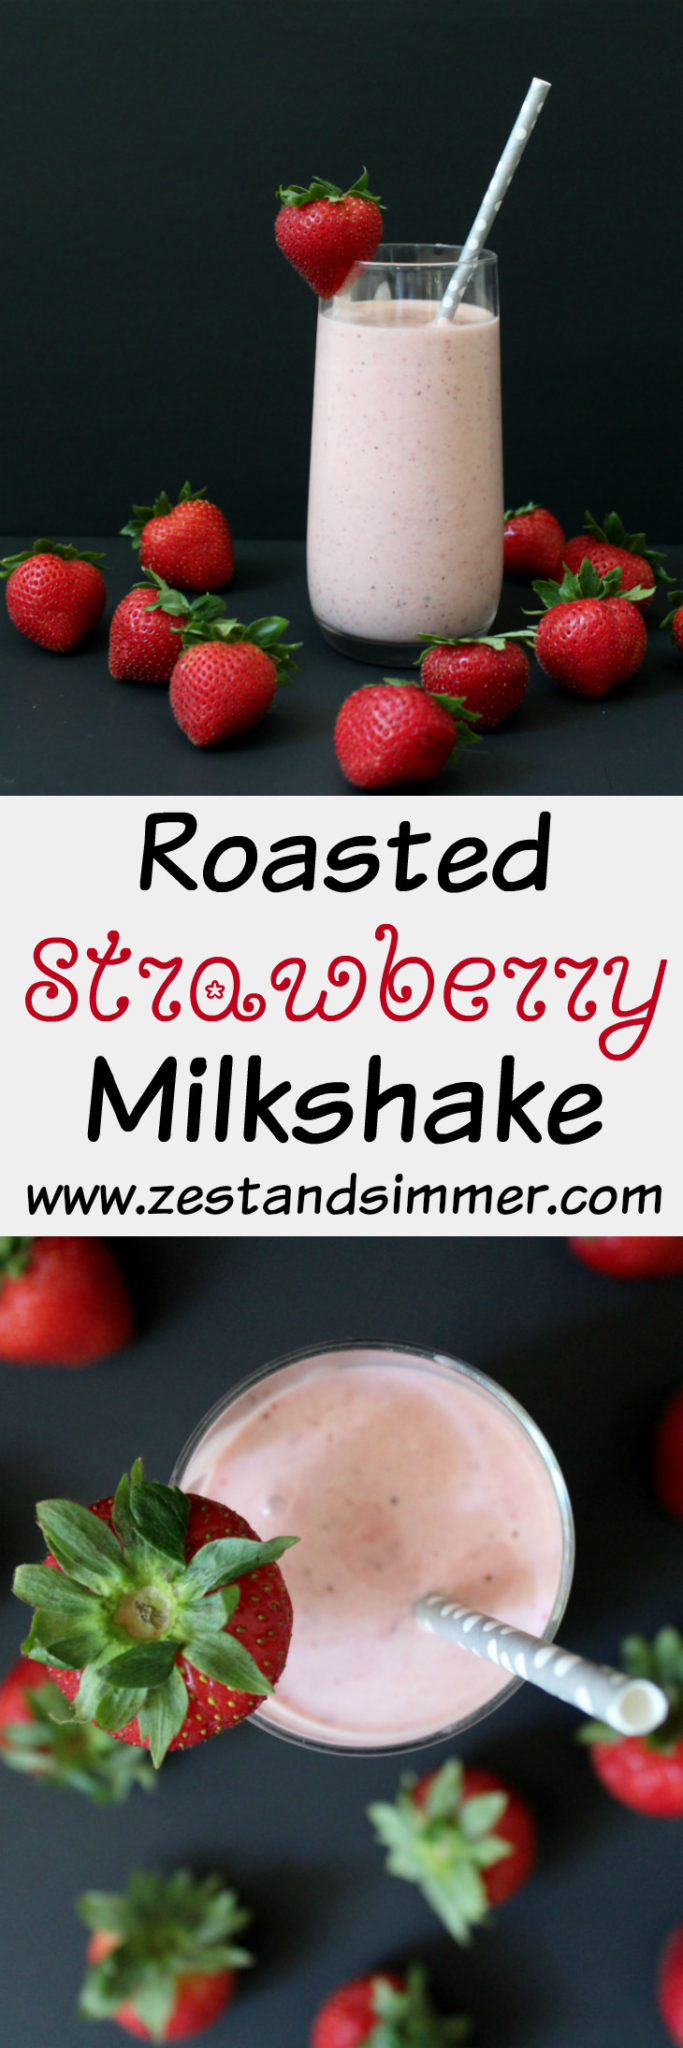 Roasted Strawberry Milkshake - Treat yourself & your loved ones to this ridiculously delicious milkshake! Once you try the classic strawberry shake with roasted strawberries you will never want it any other way! A perfect frozen treat for those hot summer days.